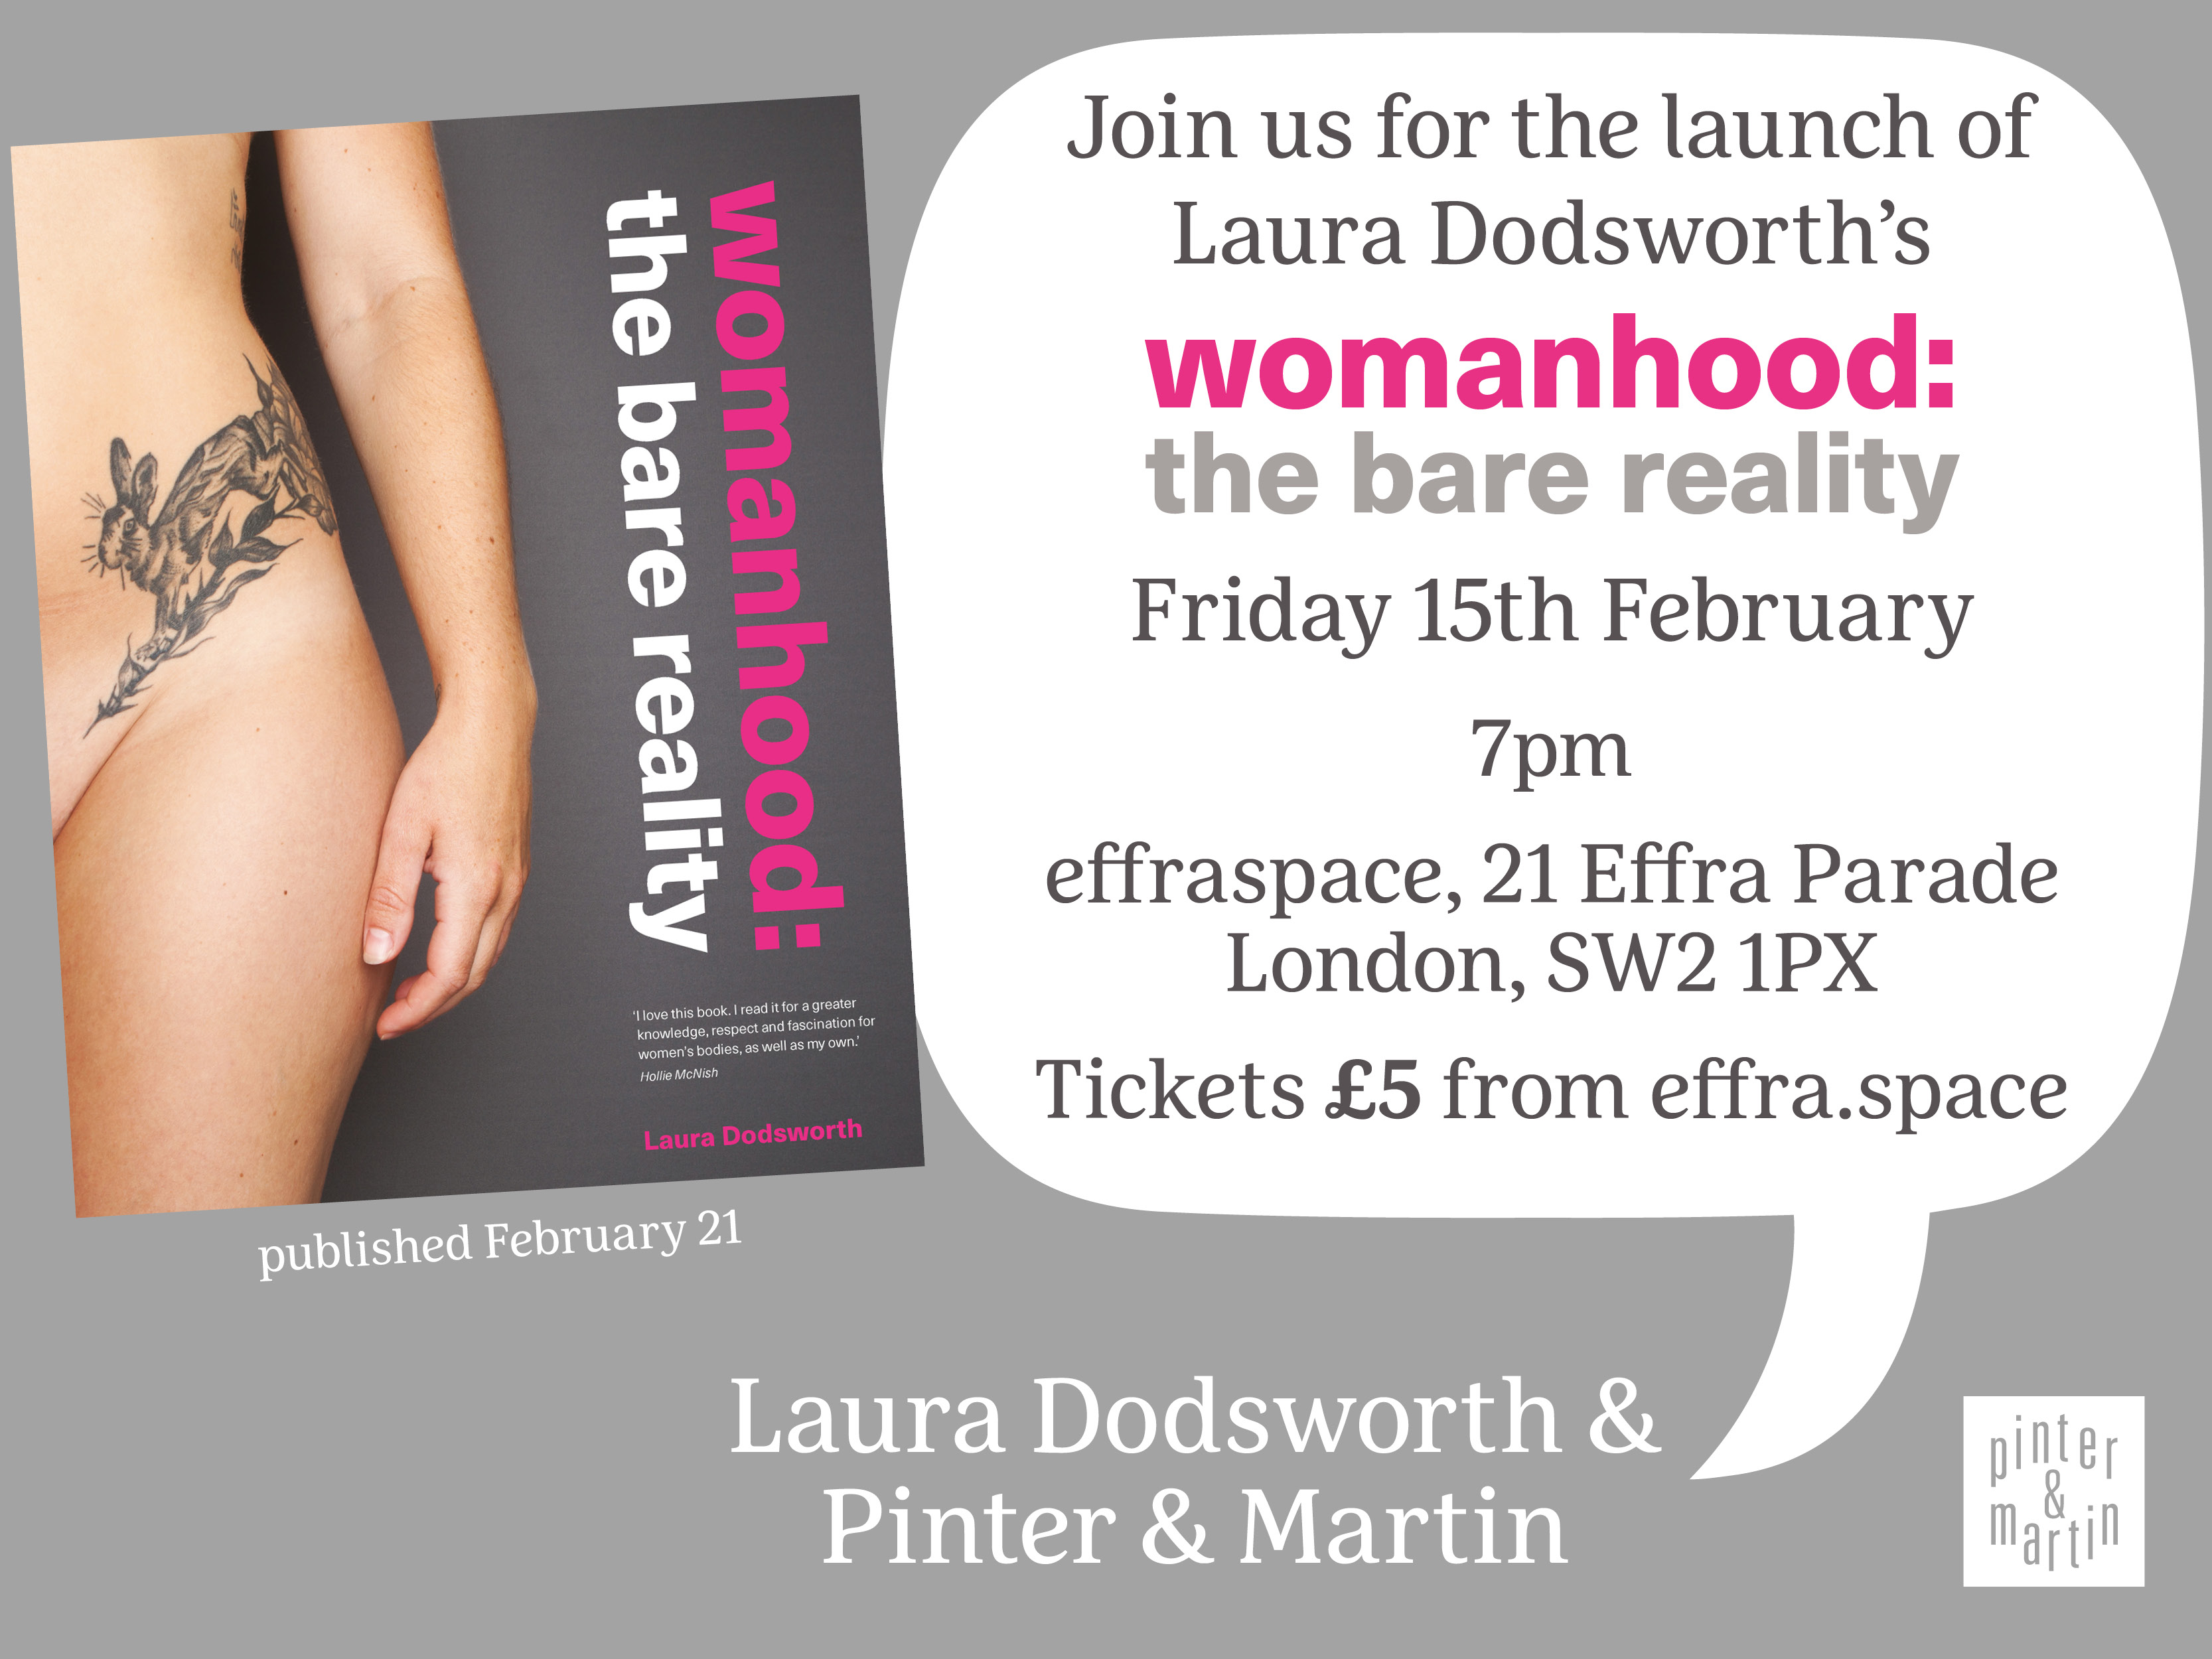 womanhood-launch-invite-public.jpg